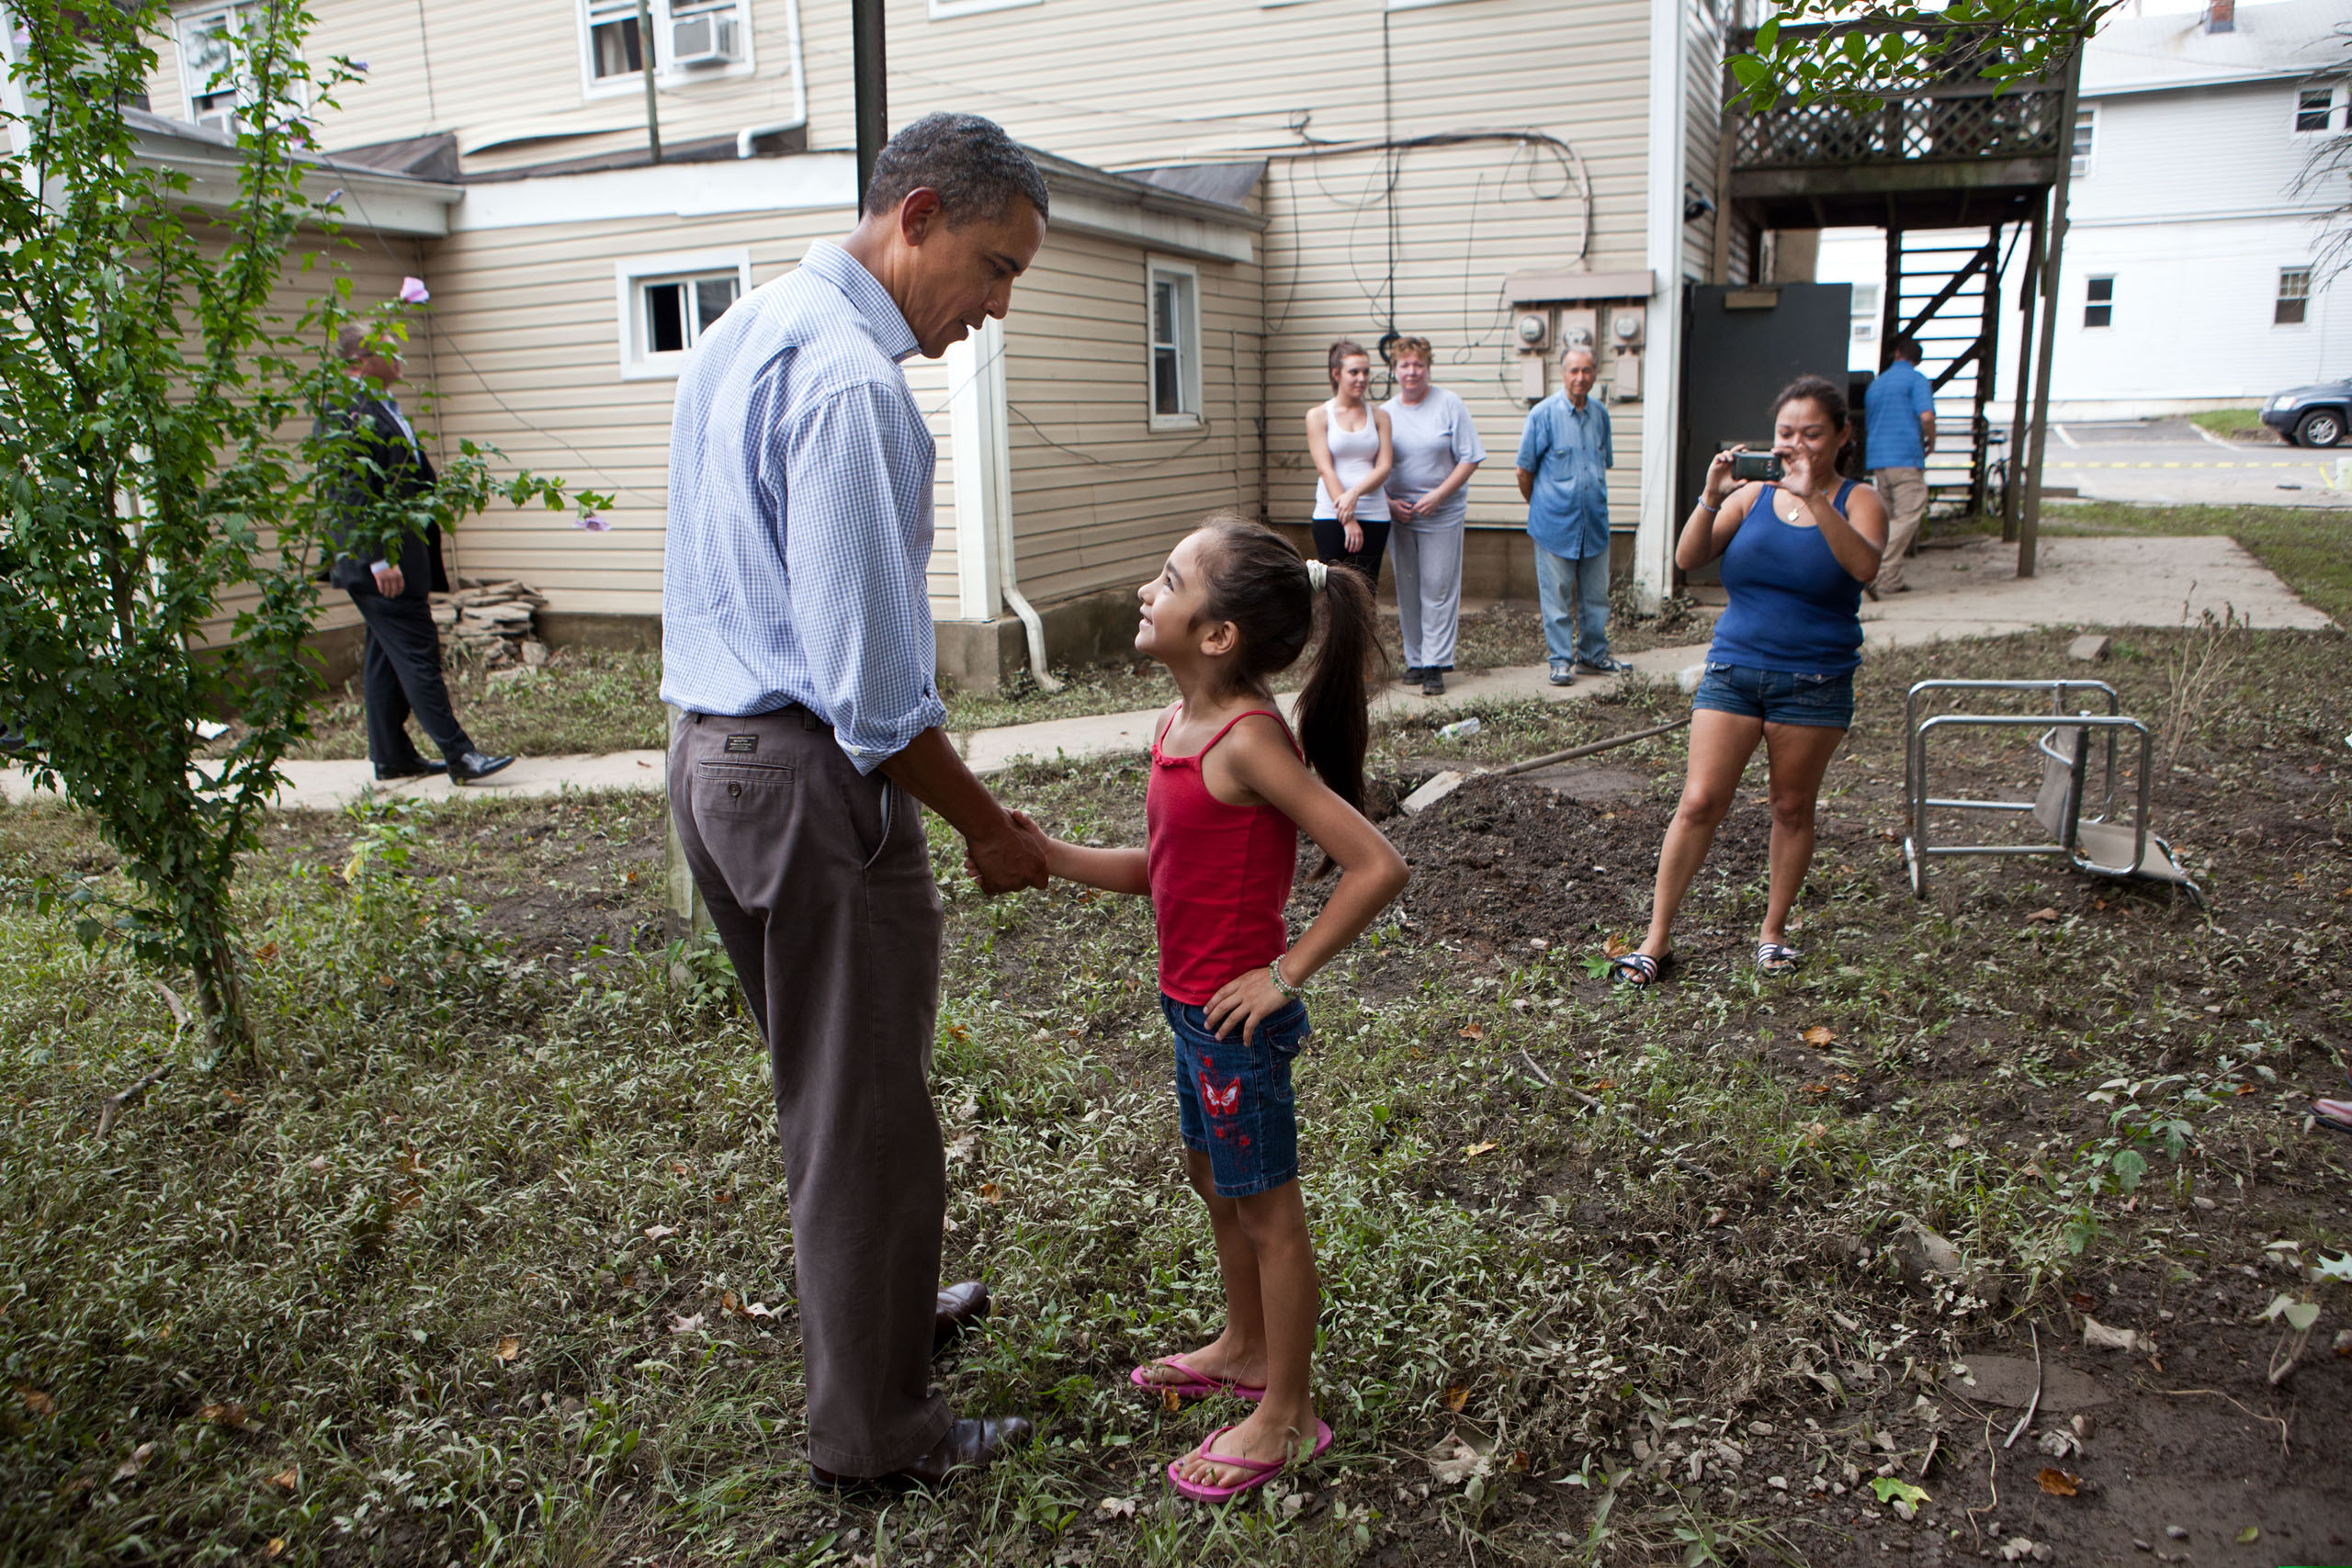 Obama greets a girl while touring a neighborhood affected by Hurricane Irene in Wayne, New Jersey on Sept. 4, 2011.